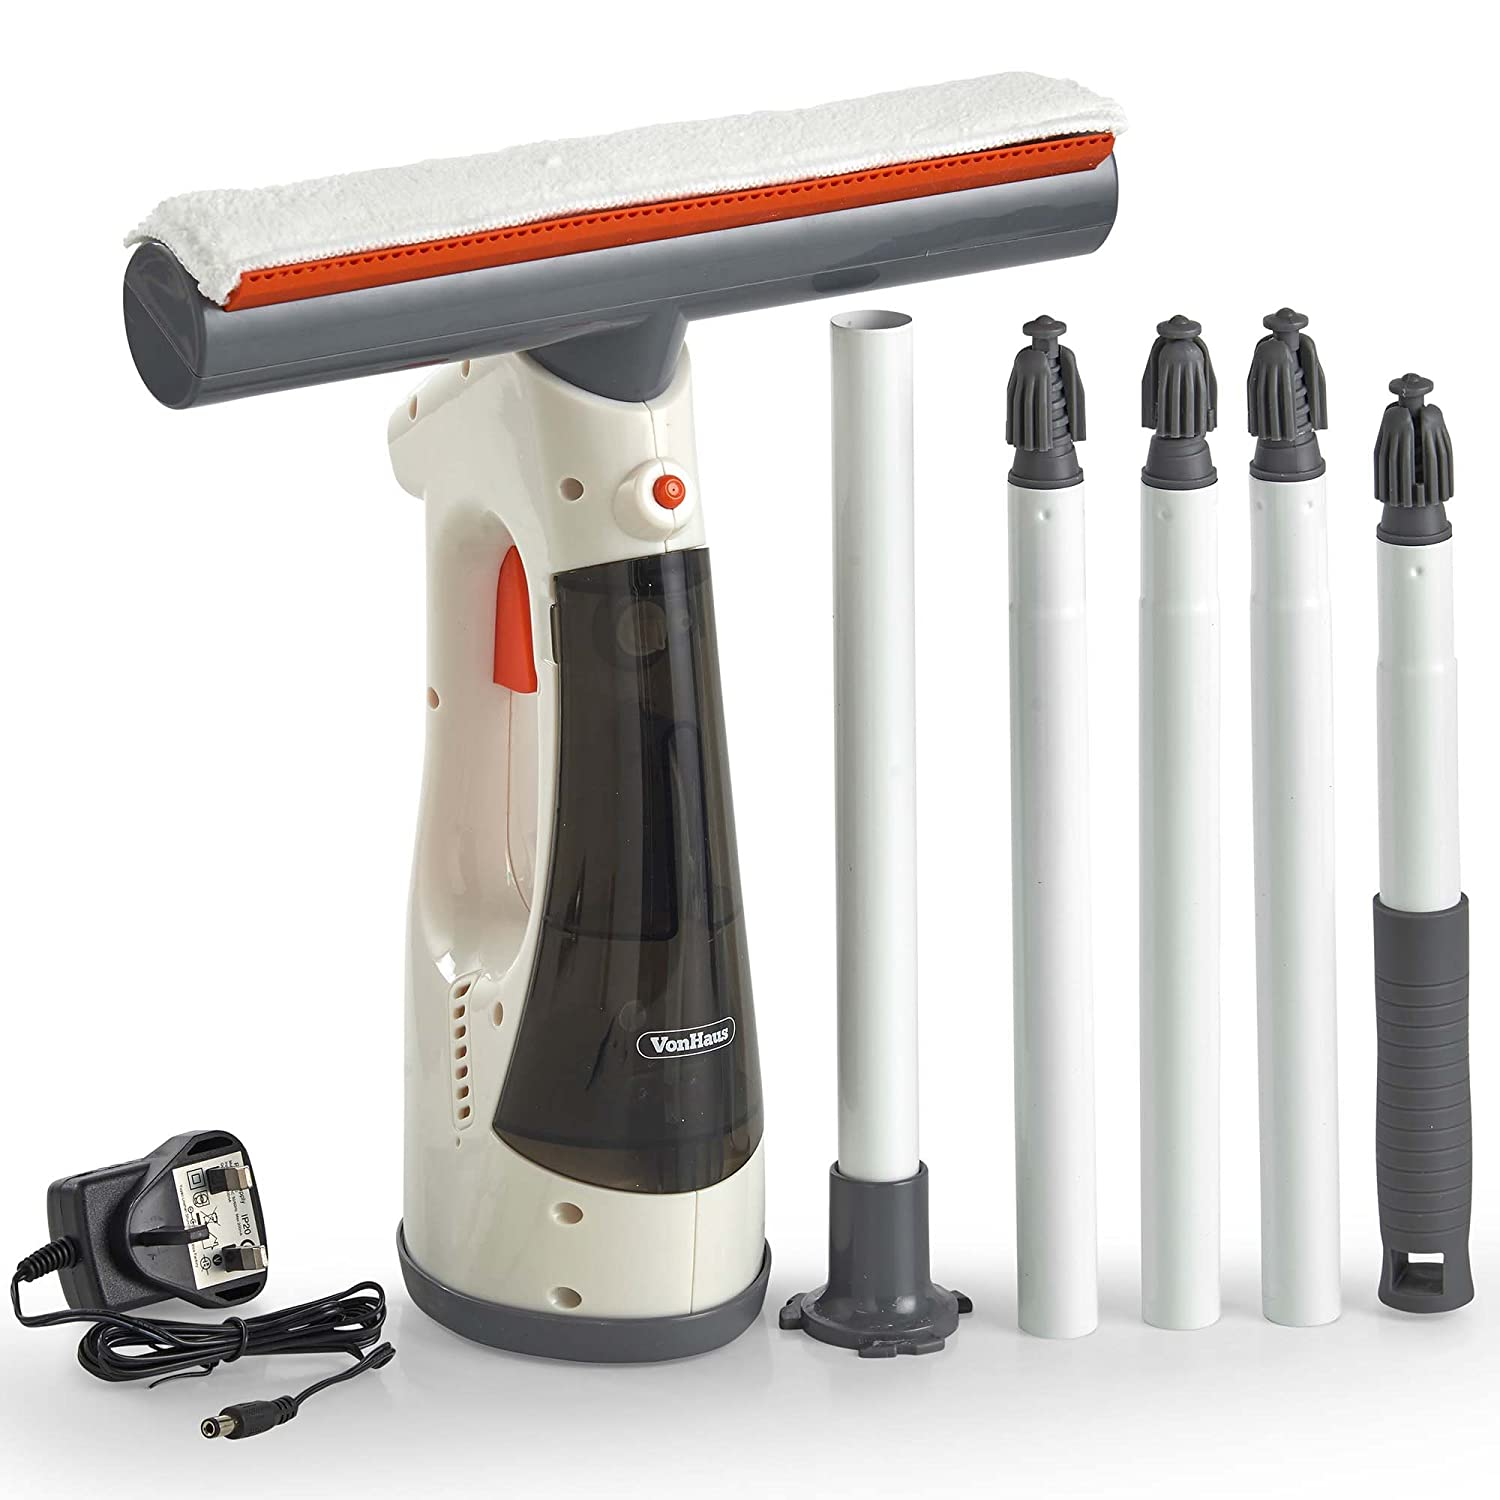 VonHaus 3-in-1 Window Vacuum/Cleaner with Rechargeable Battery – for Glass/Tiles/Windscreens/Shower Screens – Includes Squeegee & Micro-Fibre Pad Domu UK